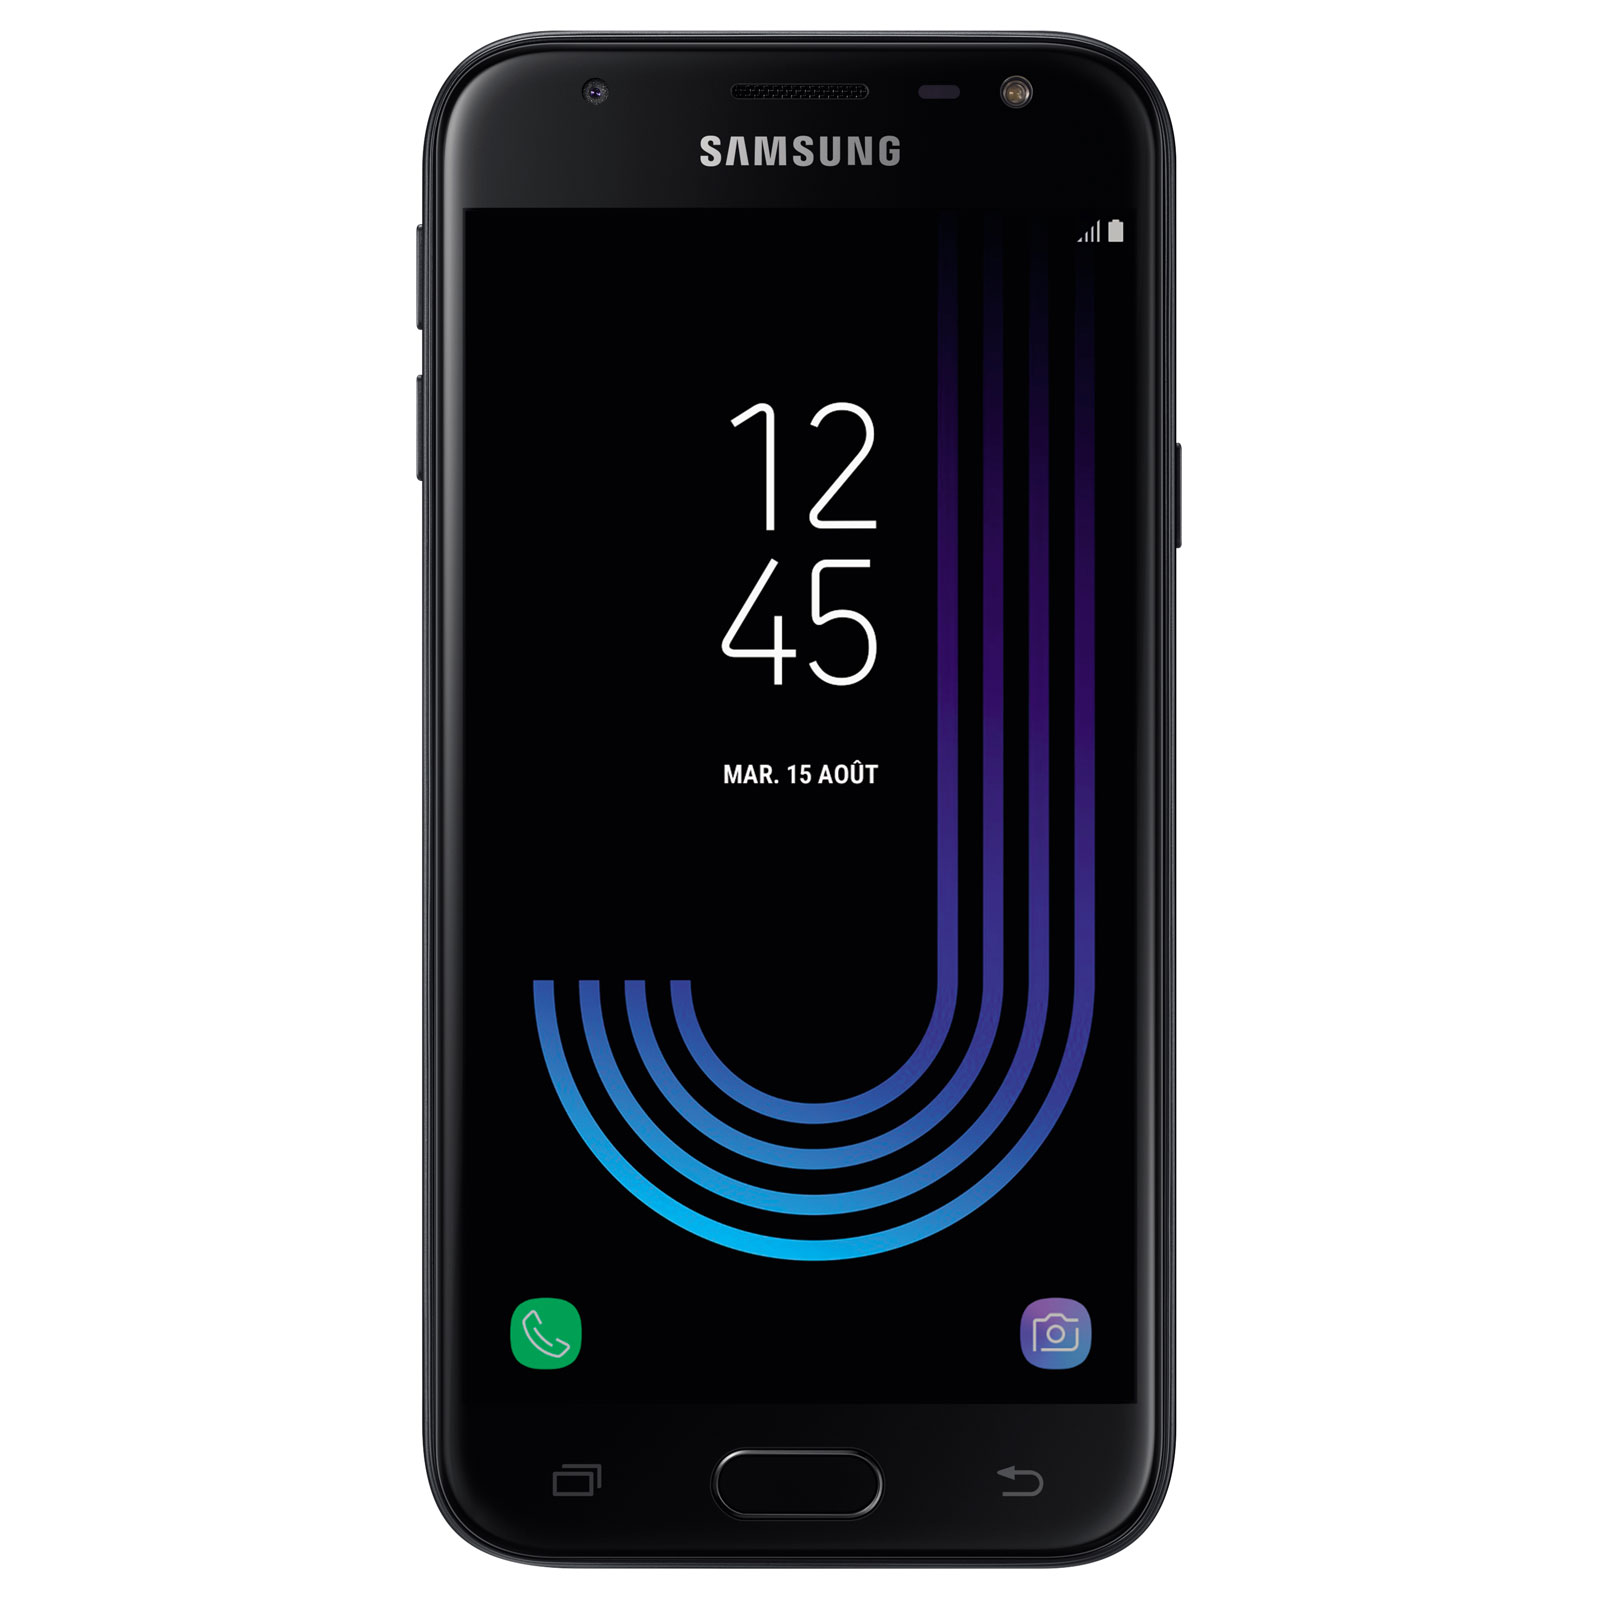 samsung galaxy j3 2017 noir mobile smartphone samsung sur. Black Bedroom Furniture Sets. Home Design Ideas